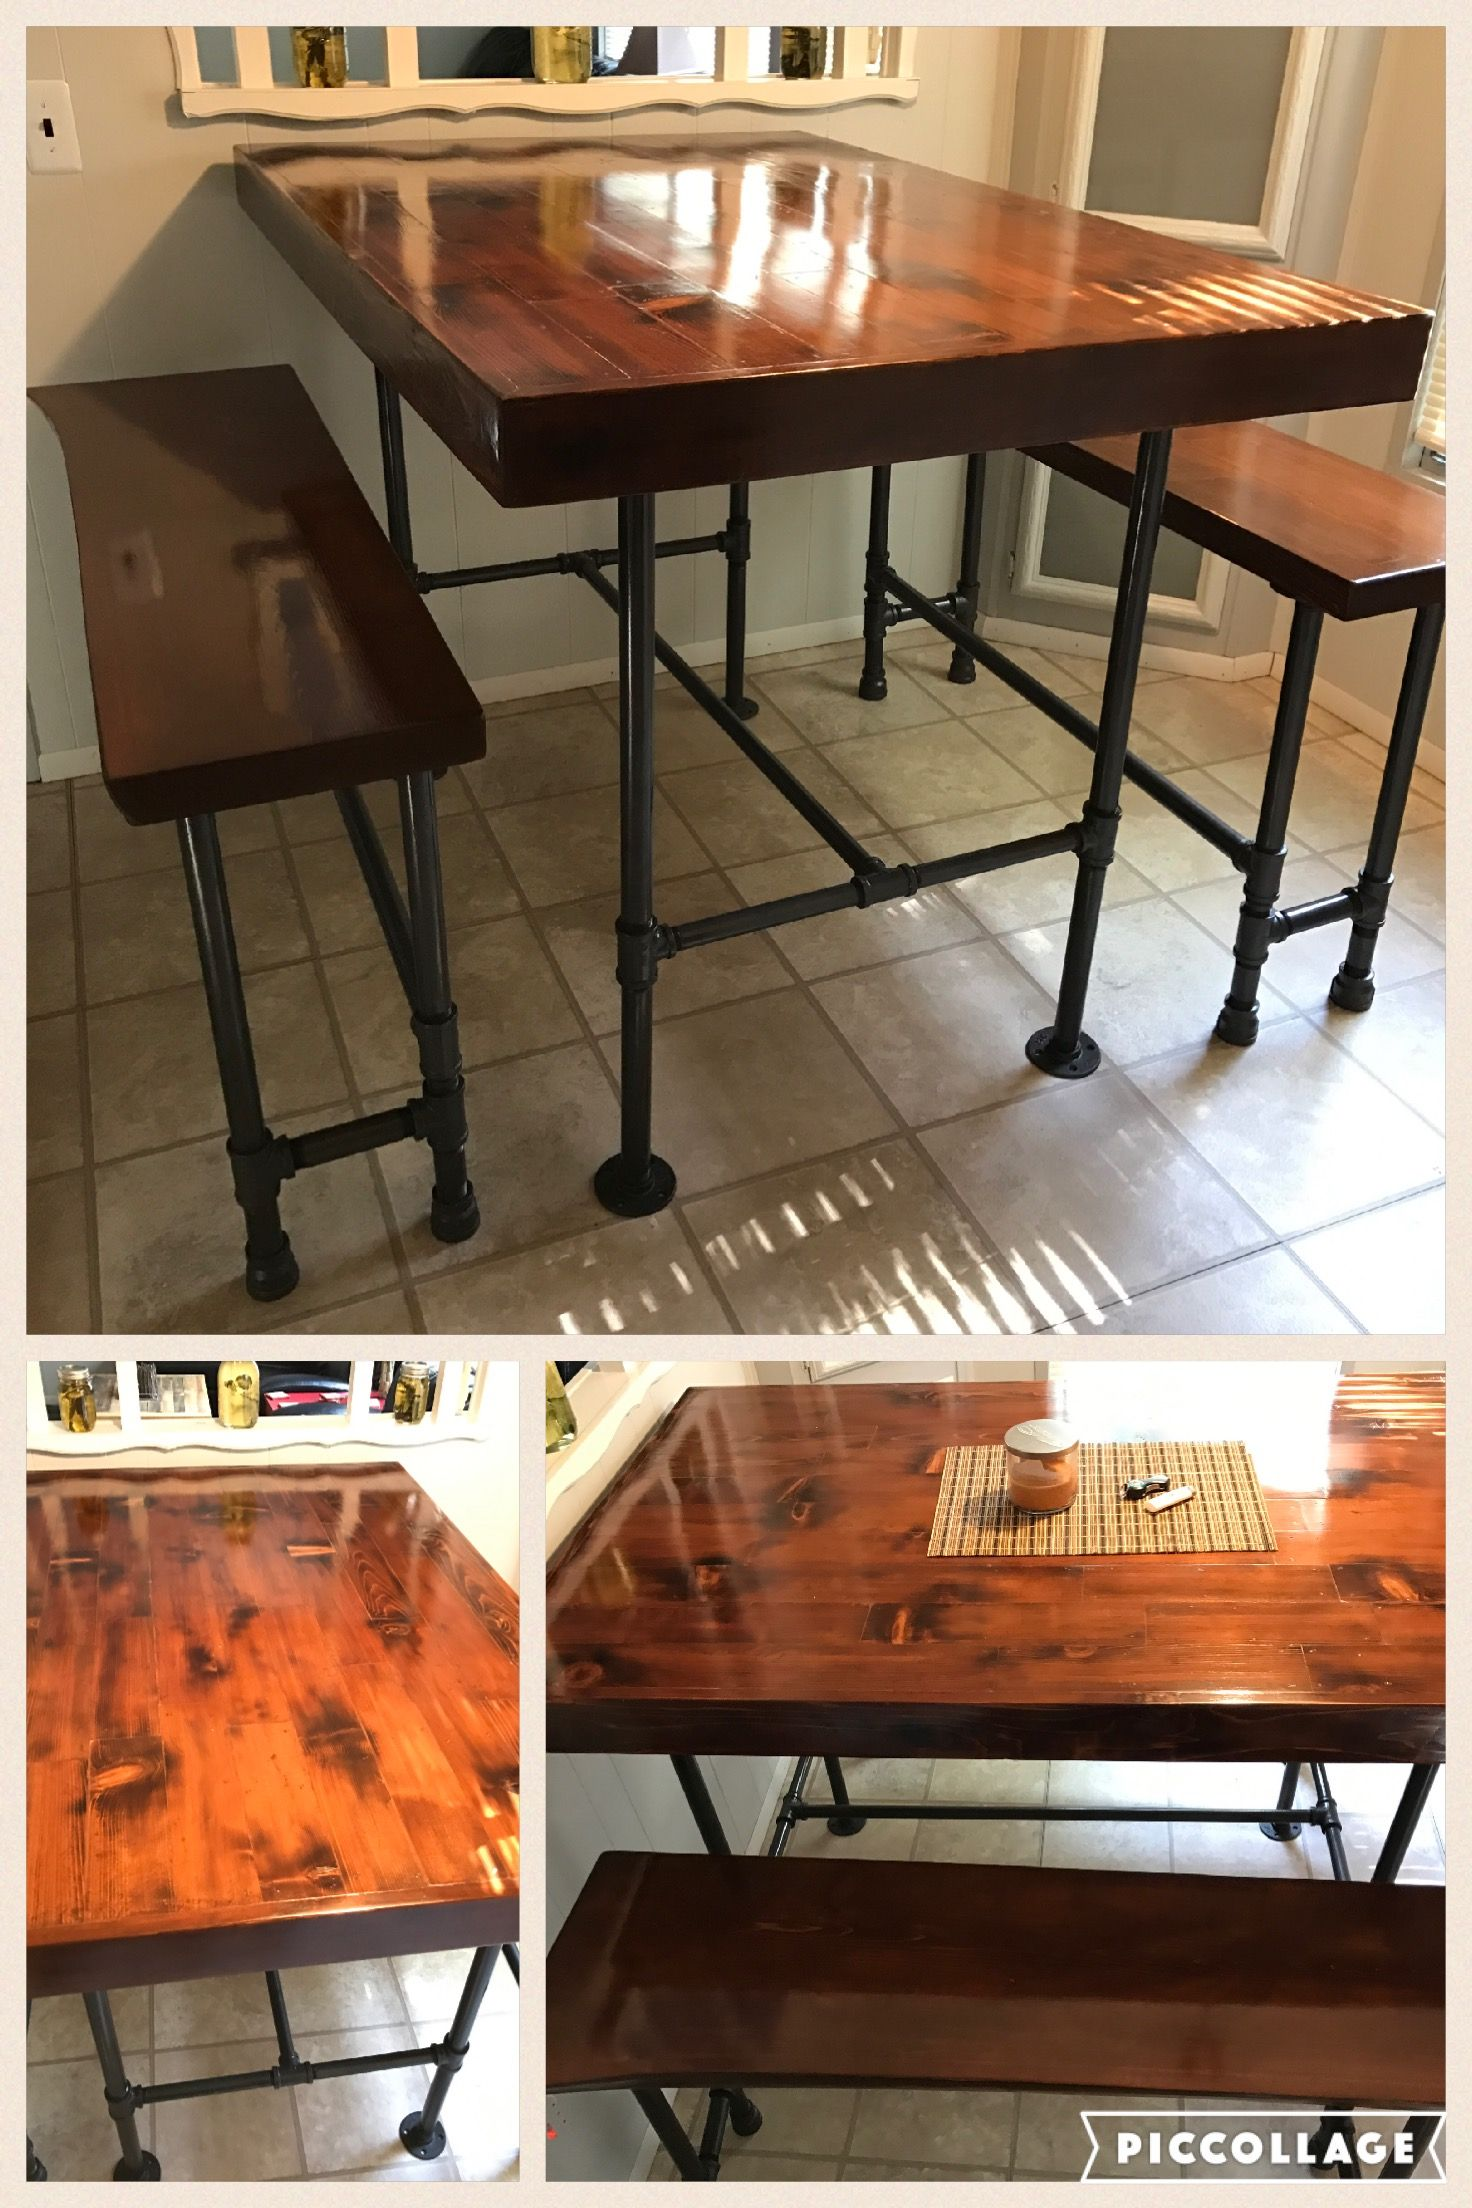 custom furniture high solid of trends and bench sasg concept dining shocking built modern u farmhouse top table wood